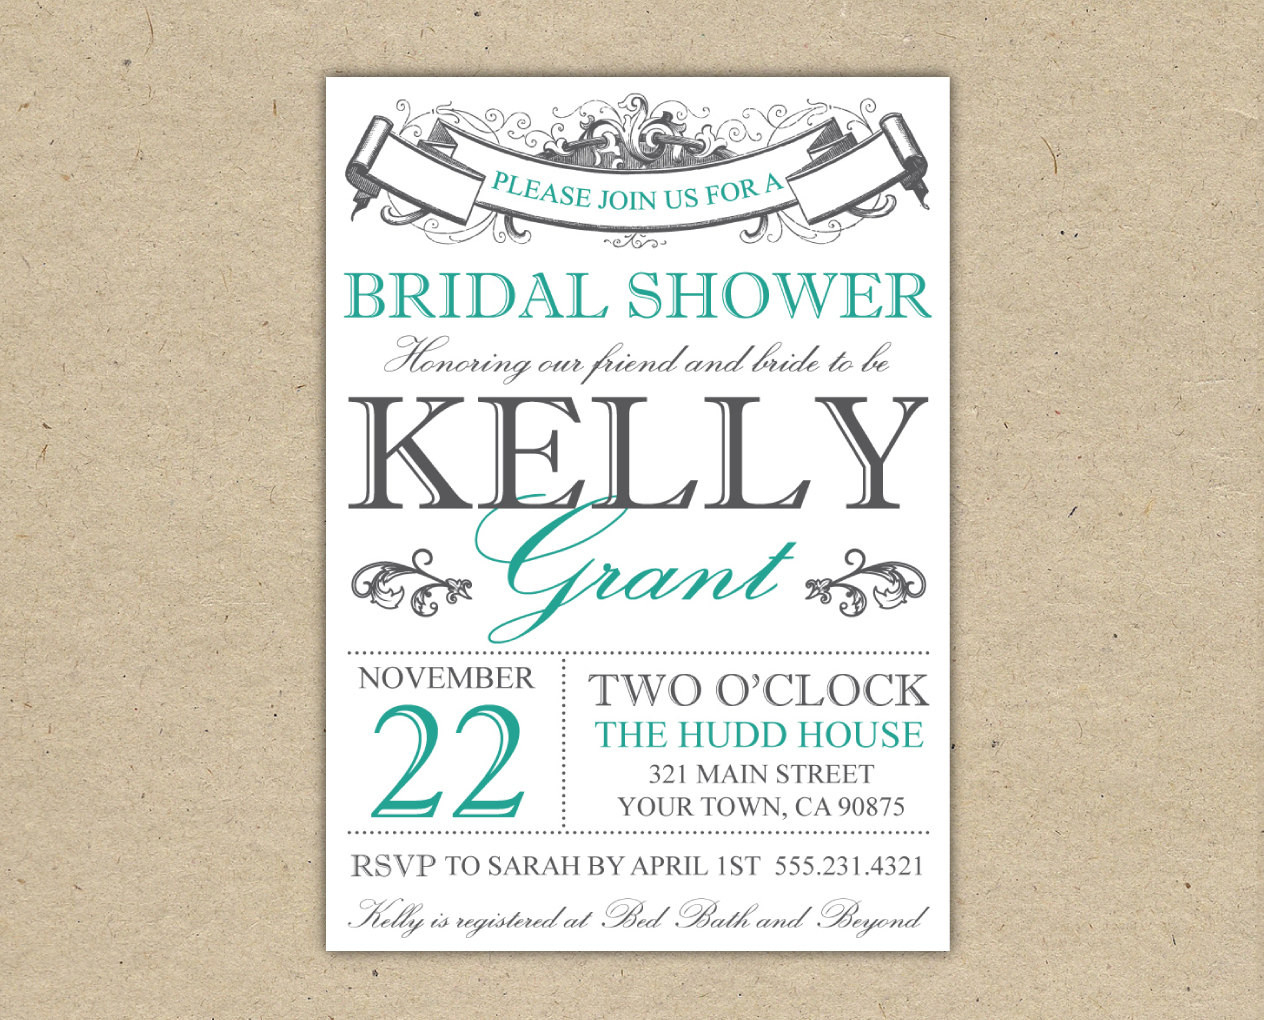 008 Free Printable Bridal Shower Invitations Templates Best - Free Printable Bridal Shower Invitations